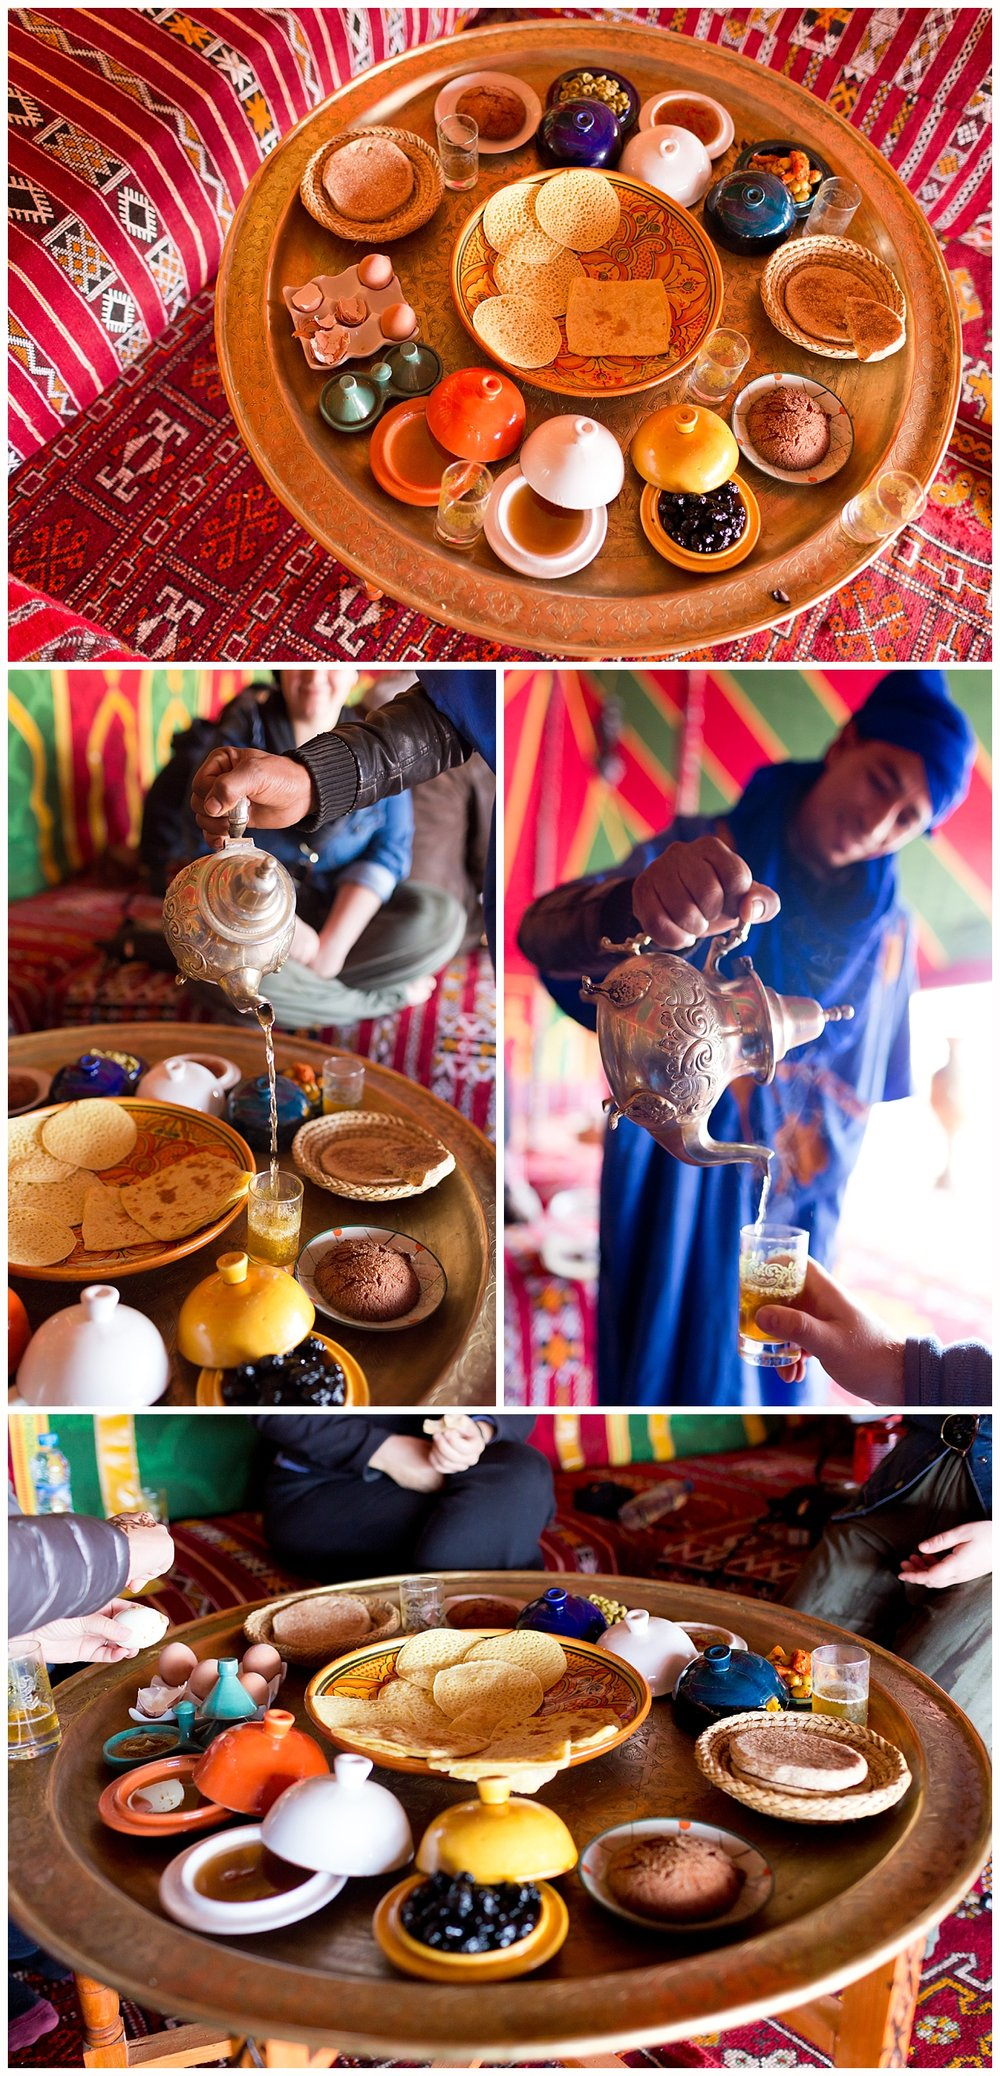 traditional Berber breakfast in Morocco